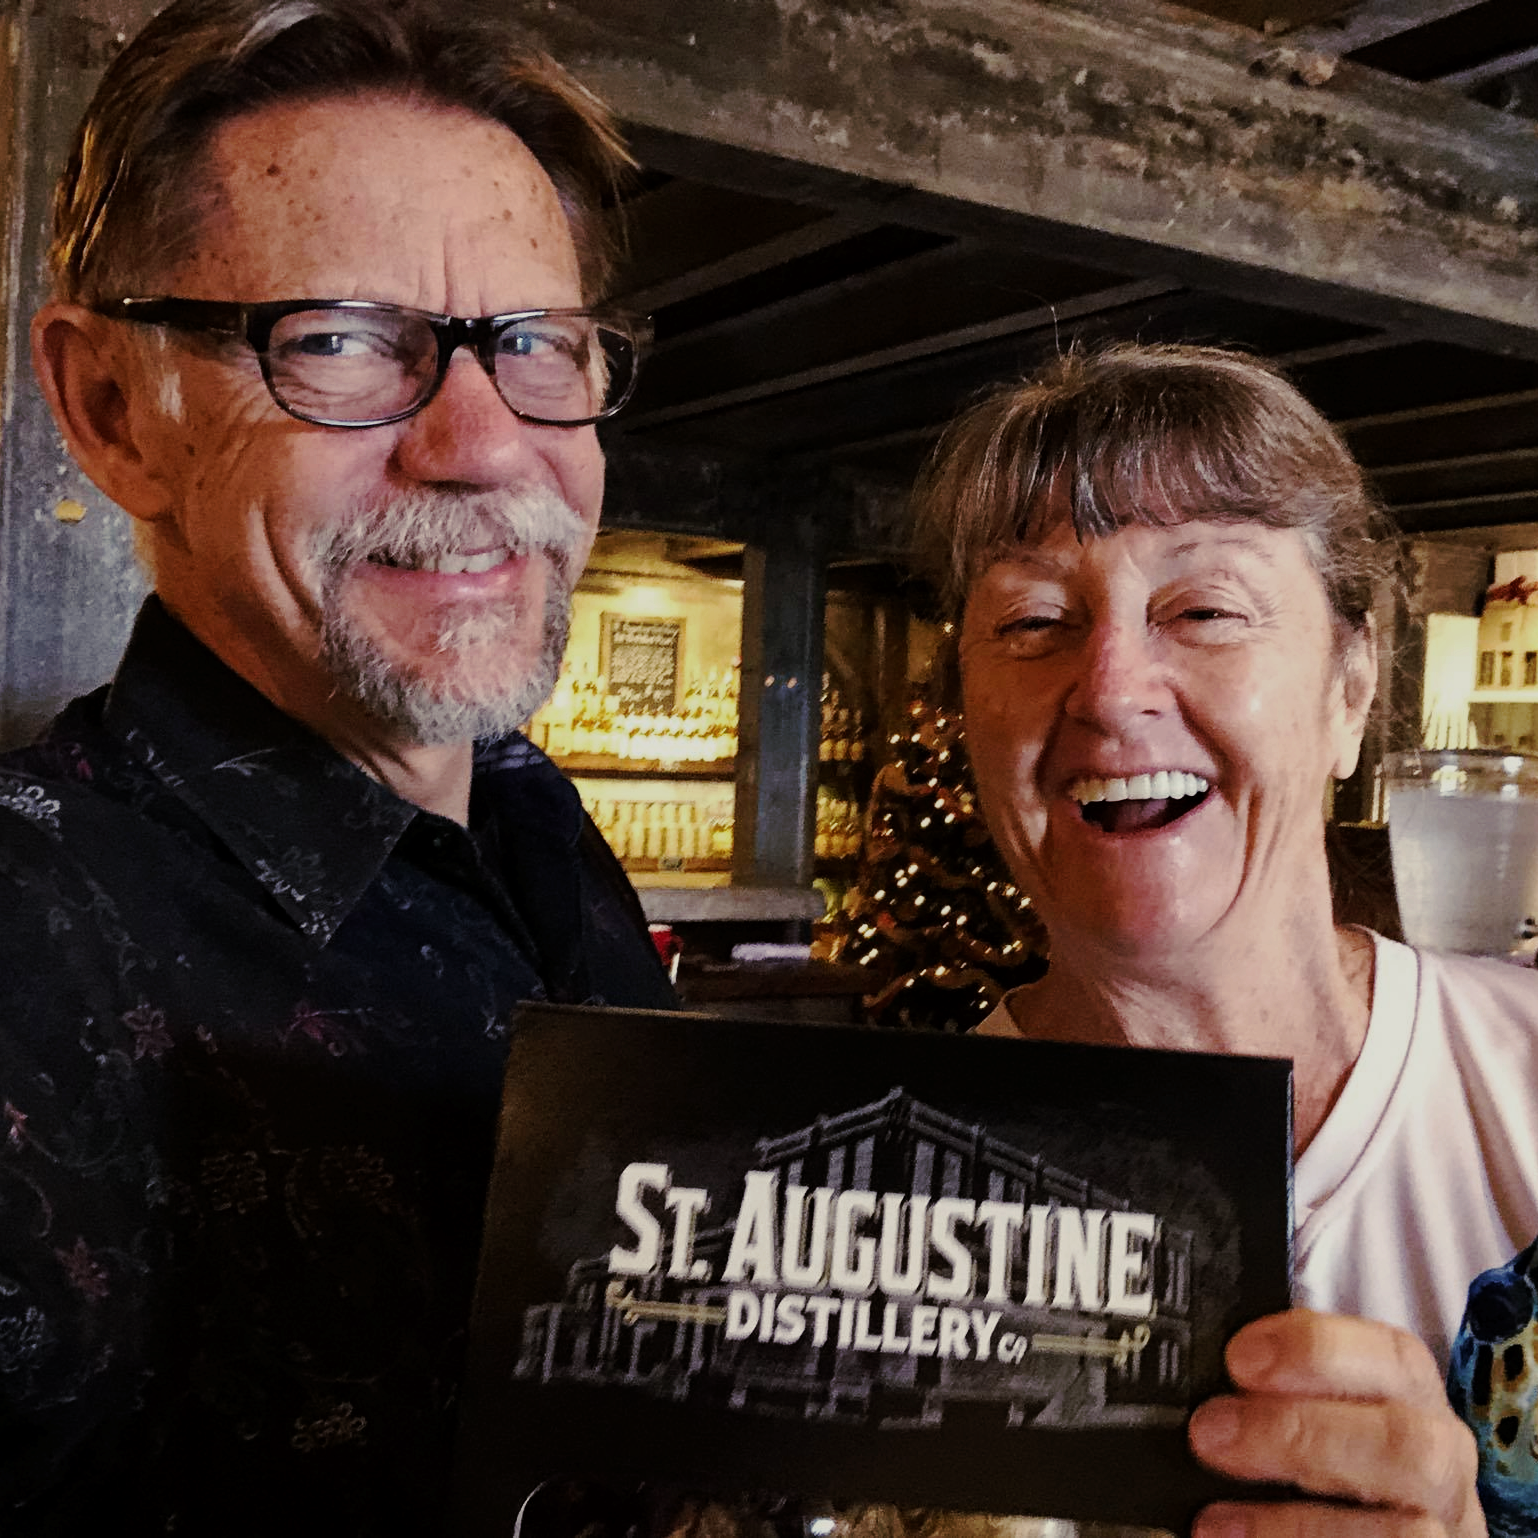 Patrons holding a sign of the St. Augustine Distillery